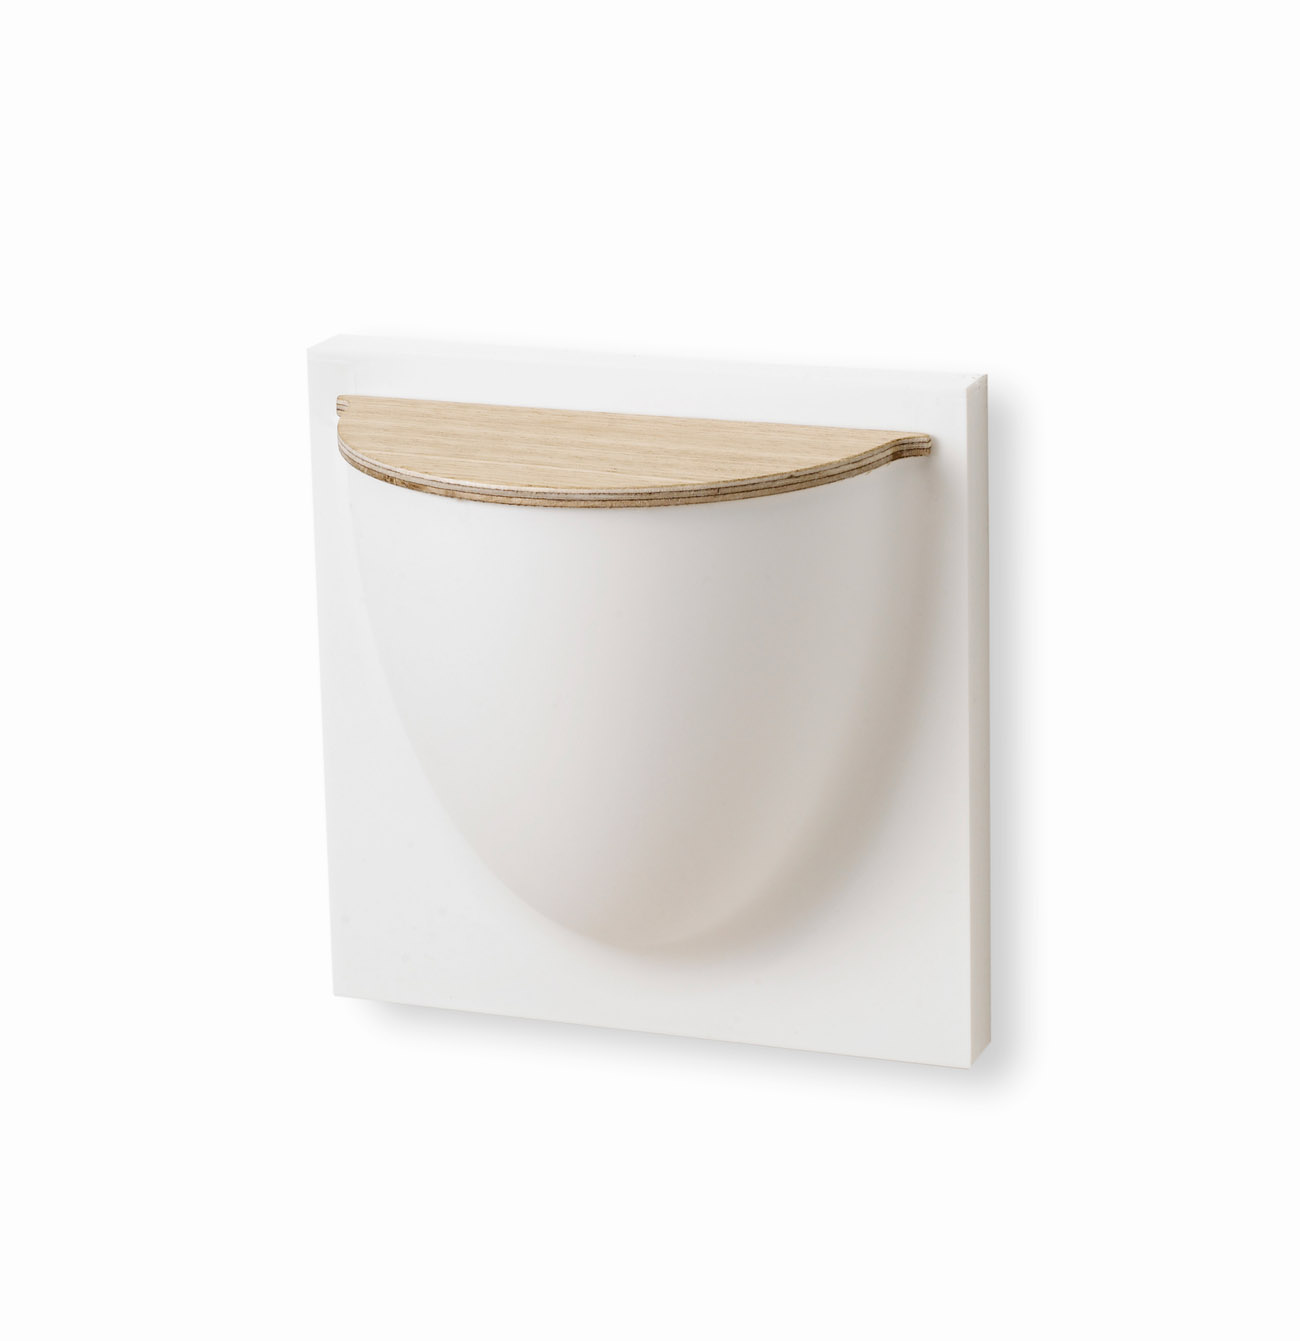 Wallpot with lid